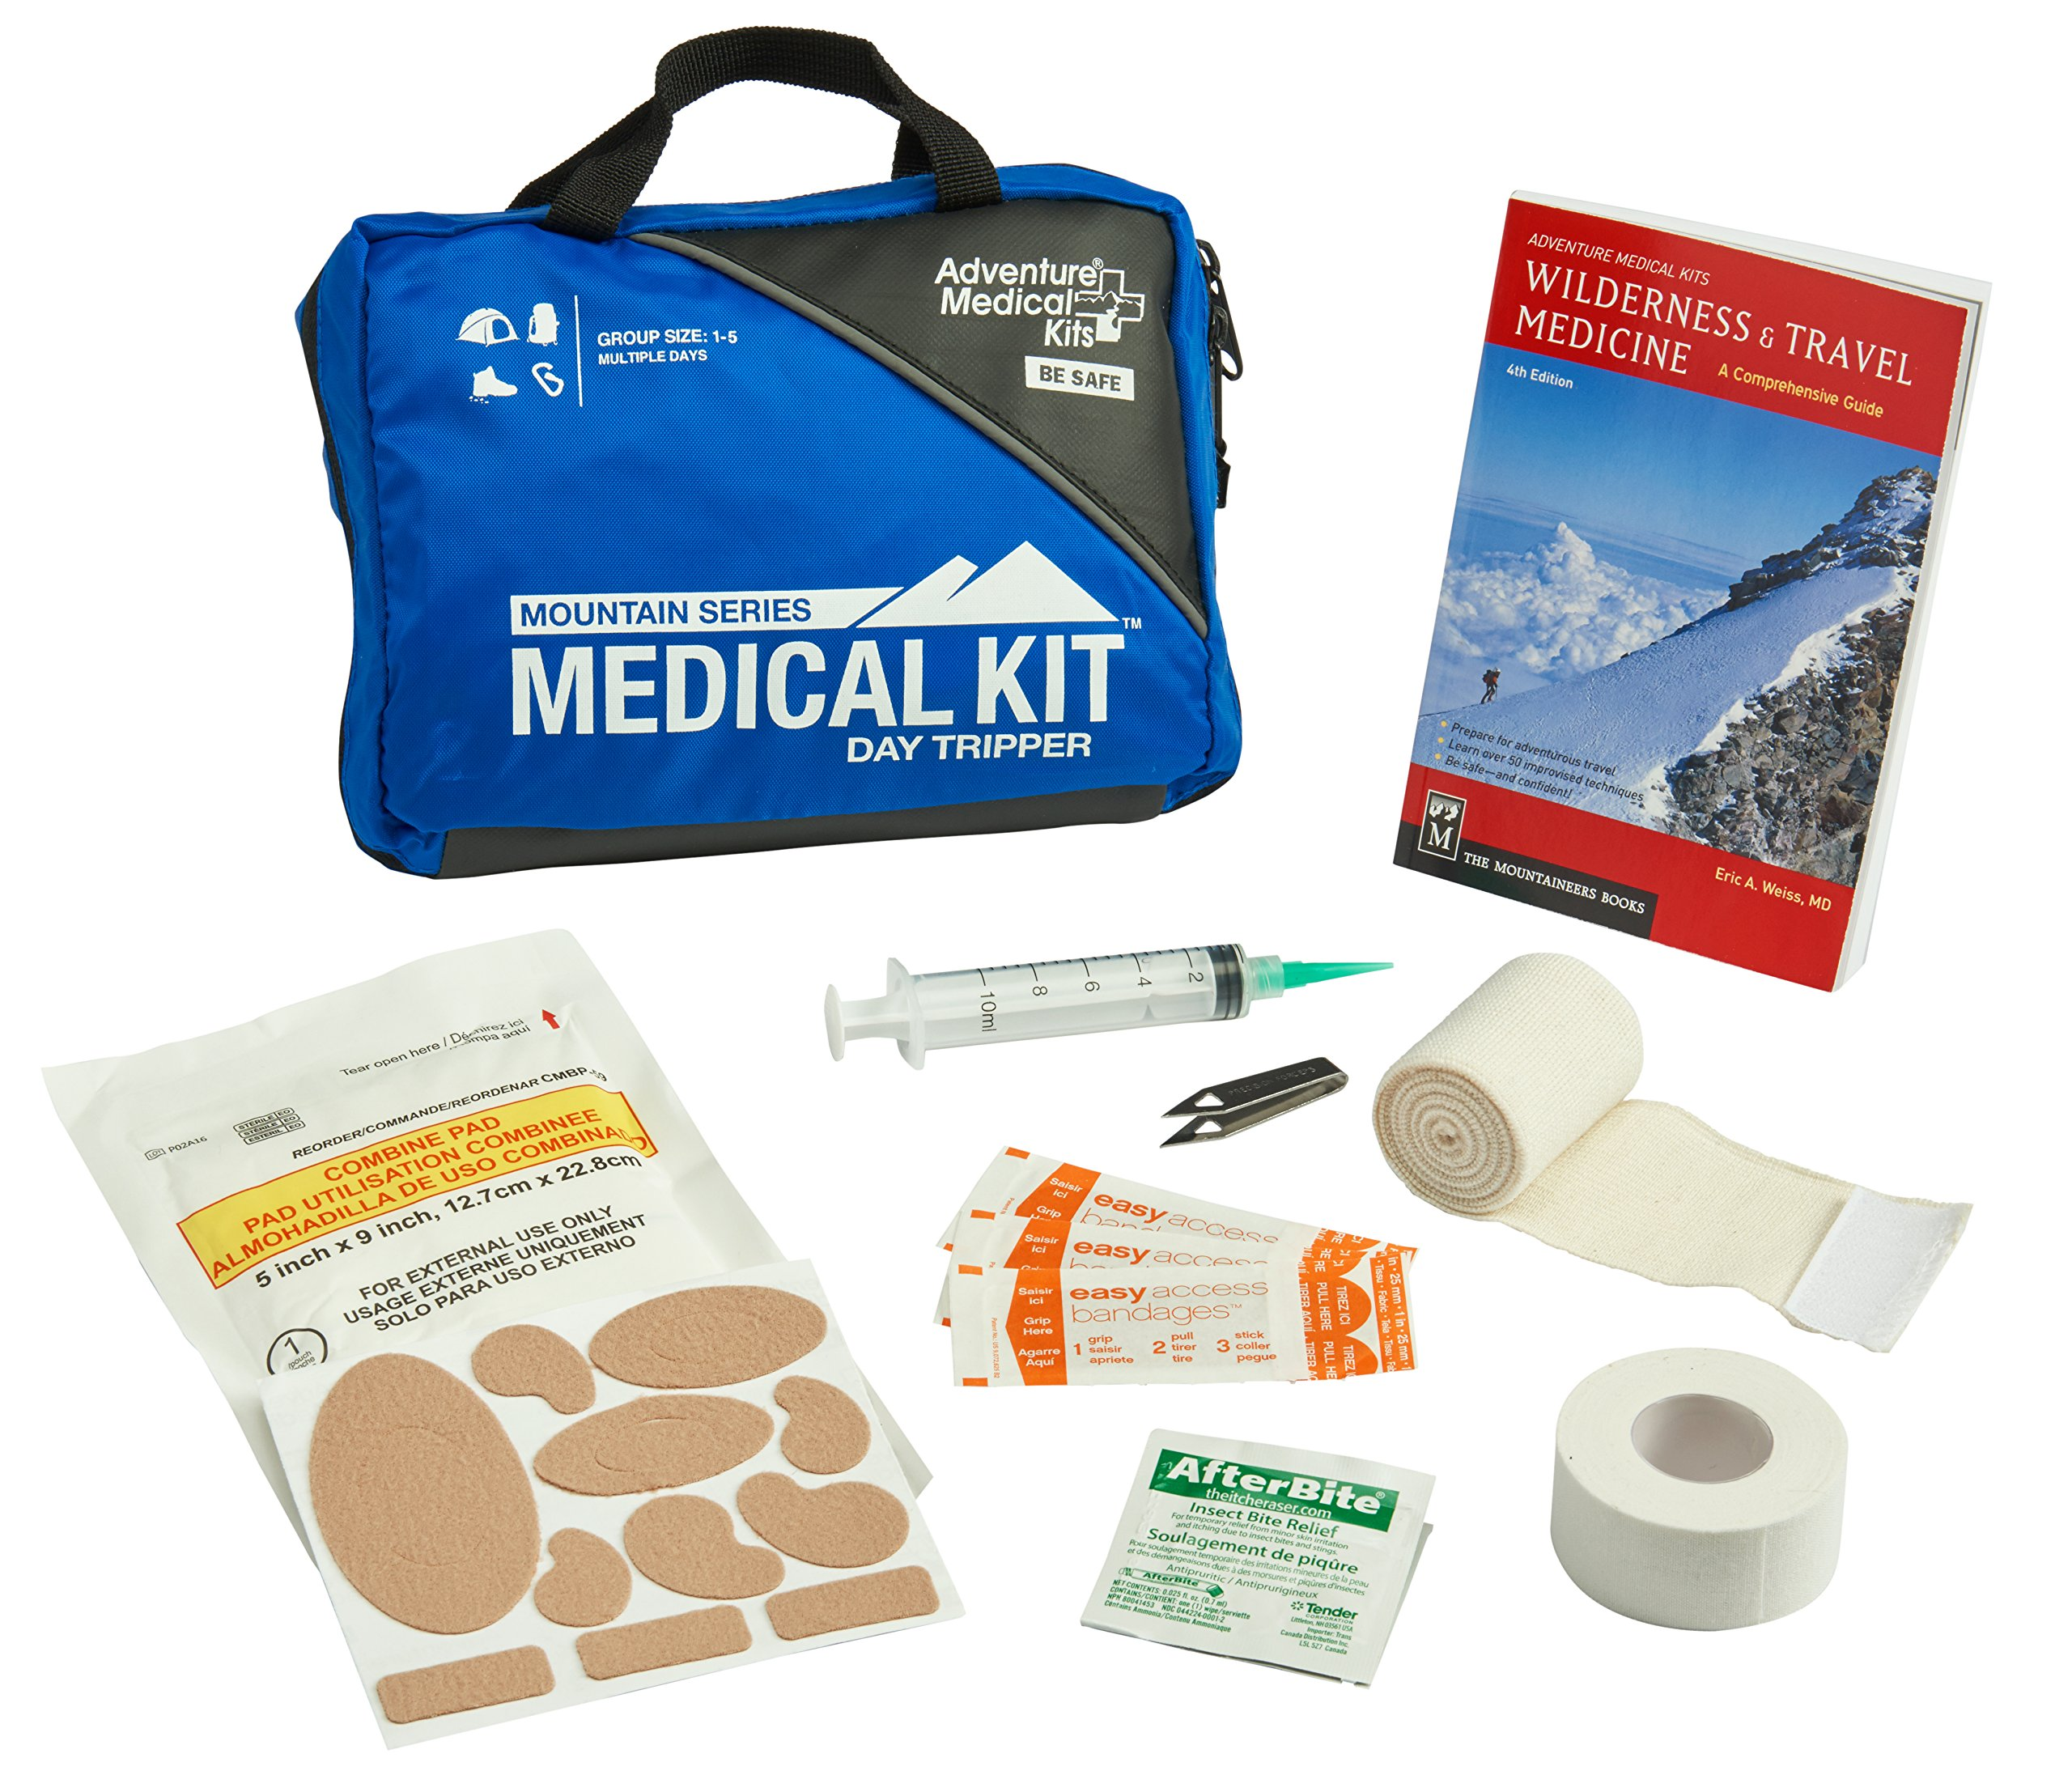 Adventure Medical Kits Mountain Series Daytripper First Aid Kit Backcountry Care Comprehensive Guide